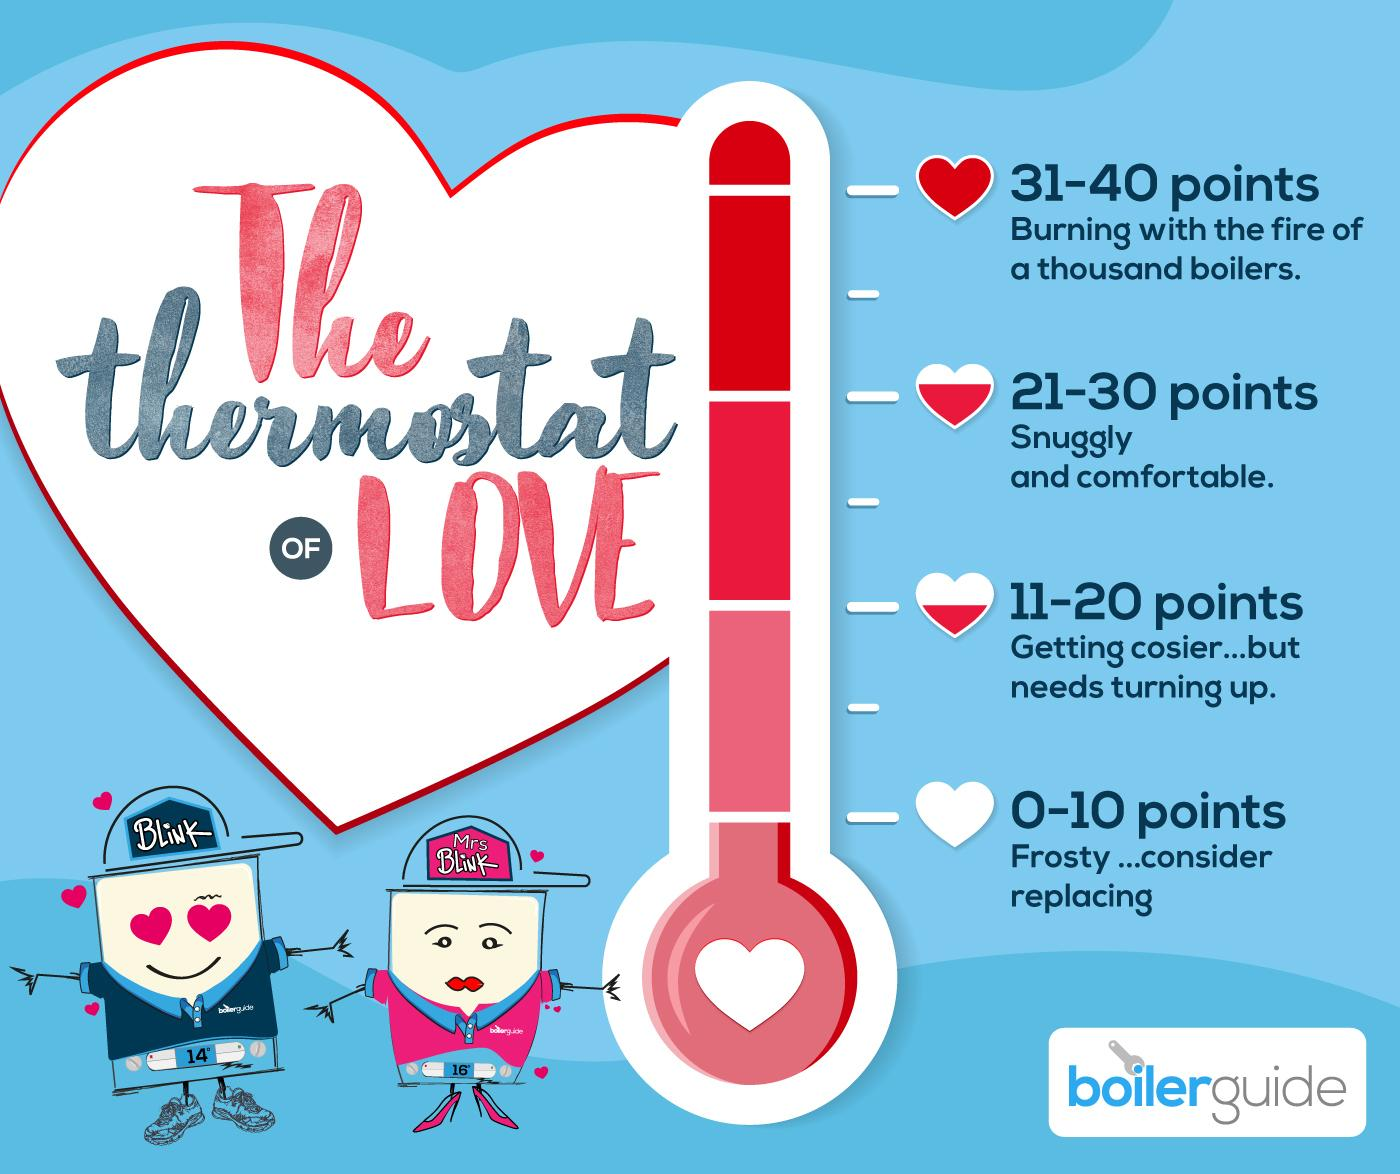 Thermostat of Love